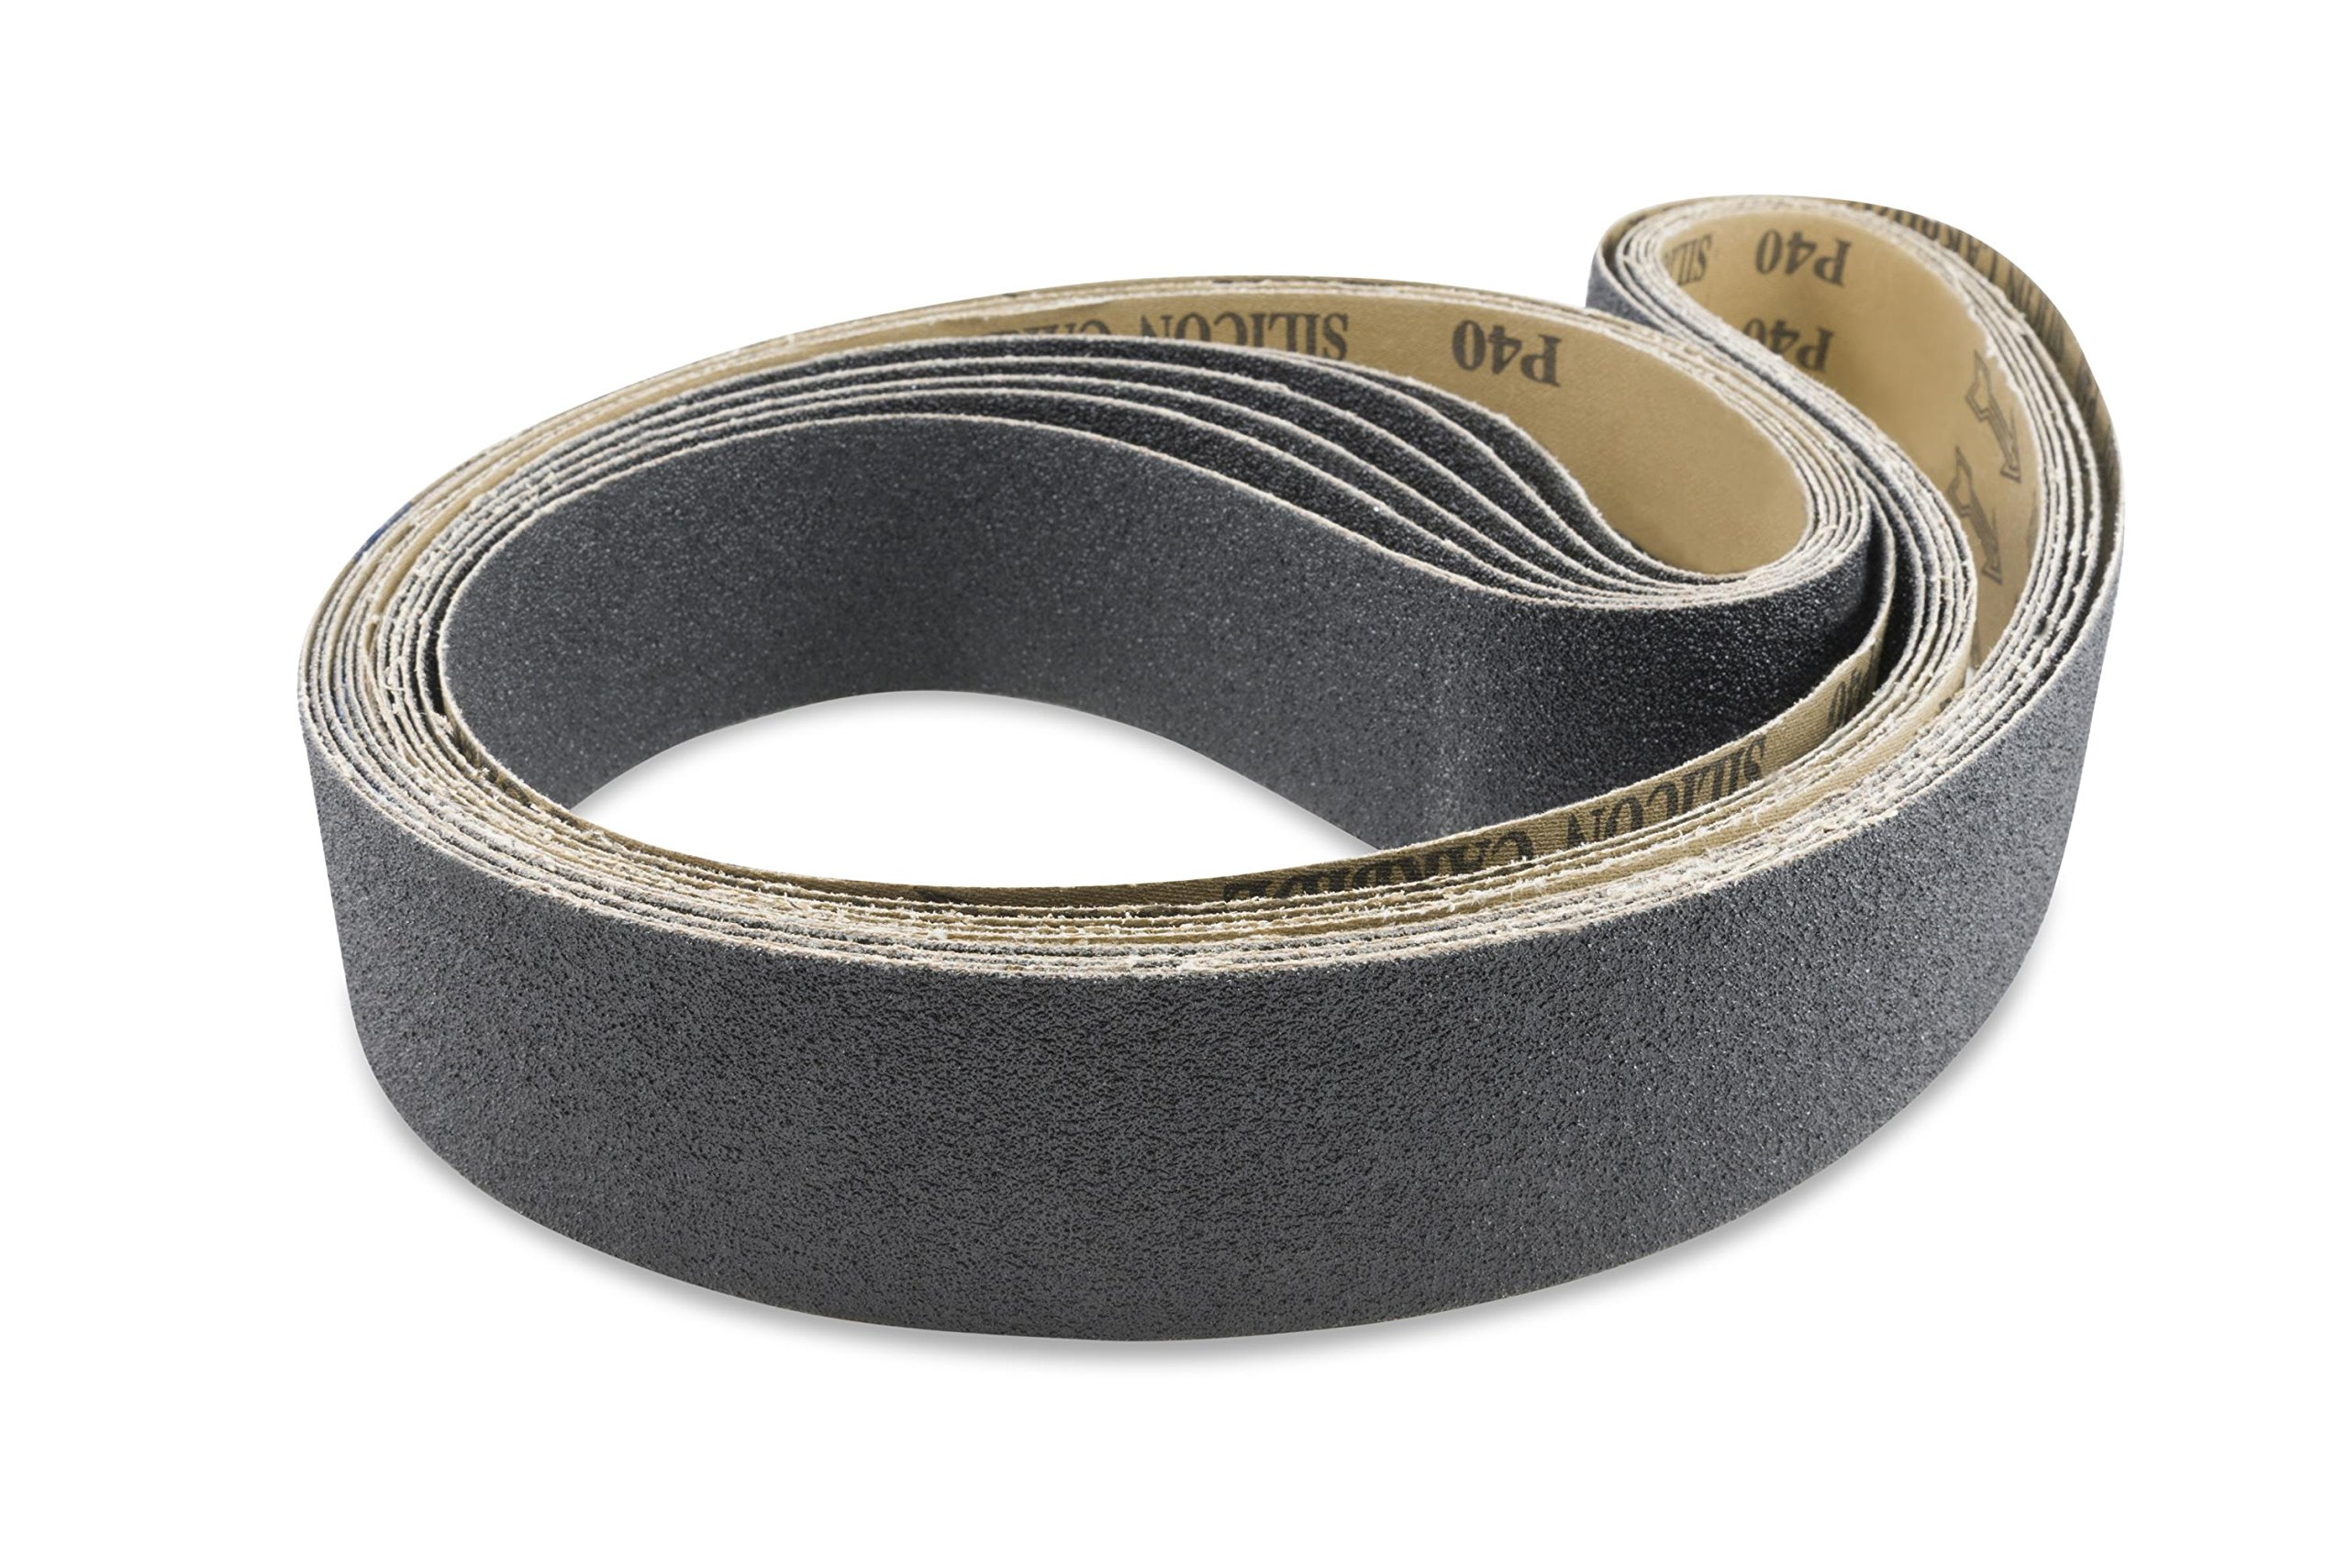 2 X 72 Inch Silicon Carbide Sanding Belts, 6 Pack by Red Label Abrasives